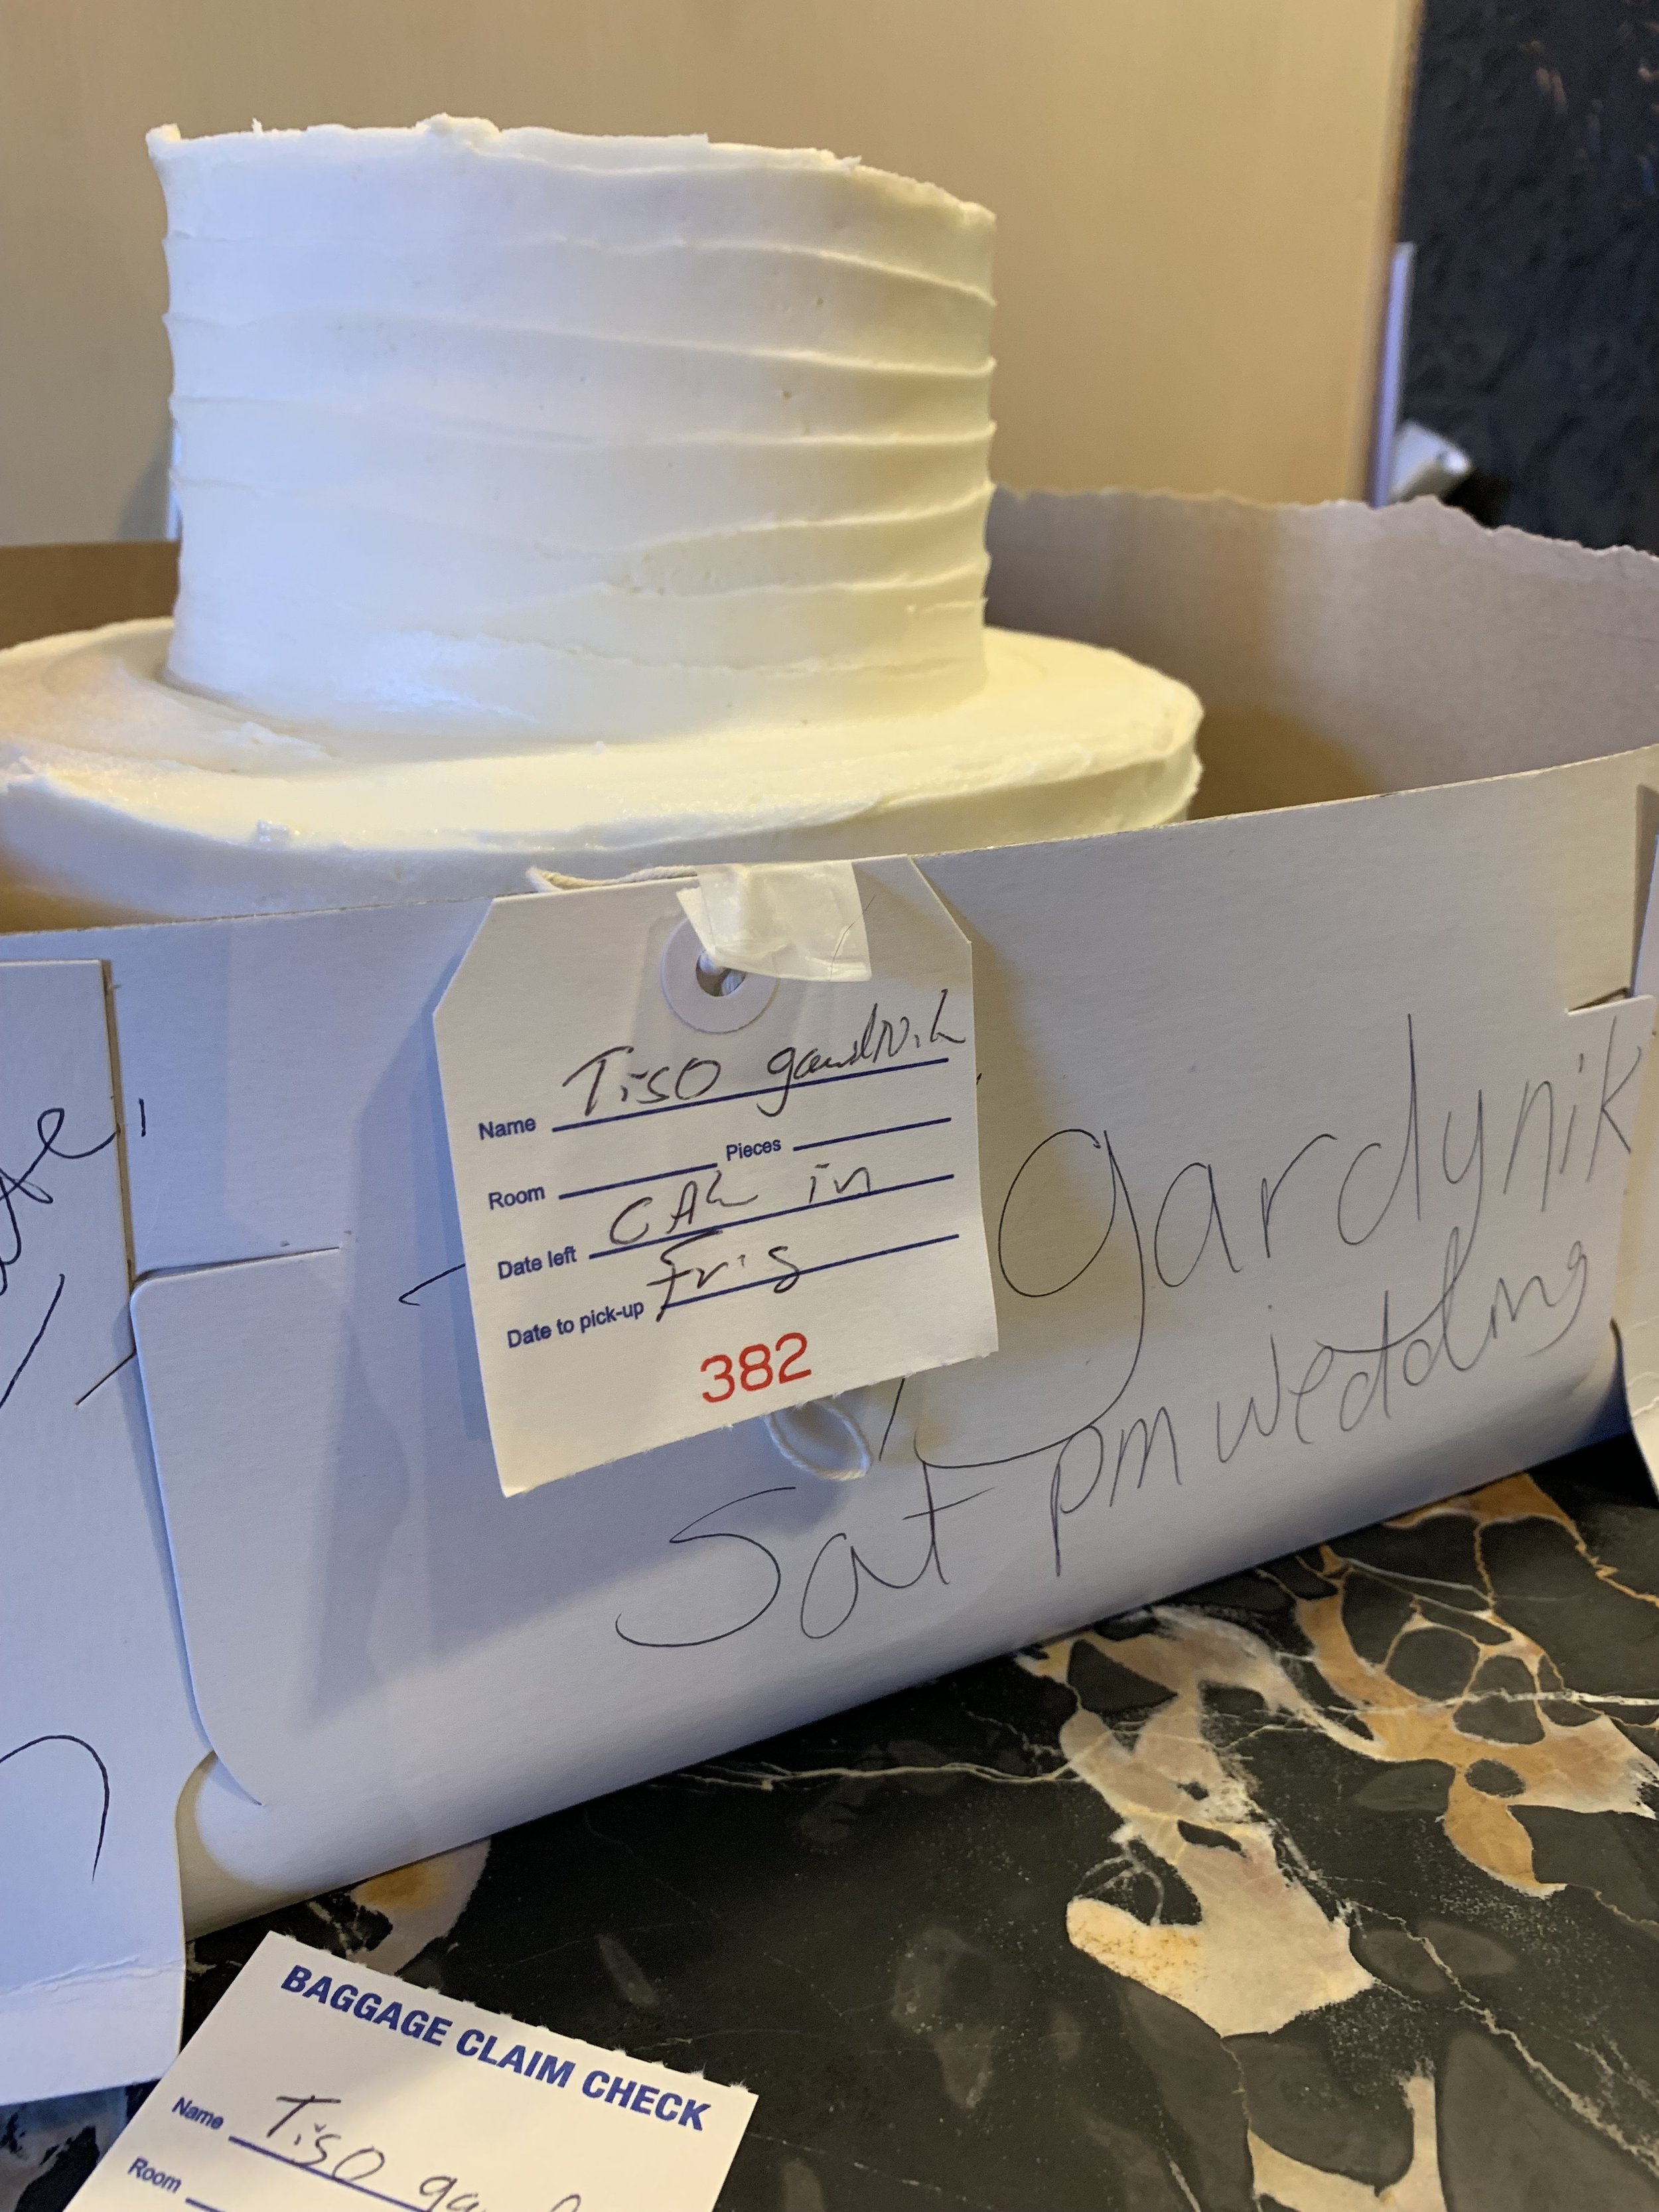 Cake with Baggage Claim ticket